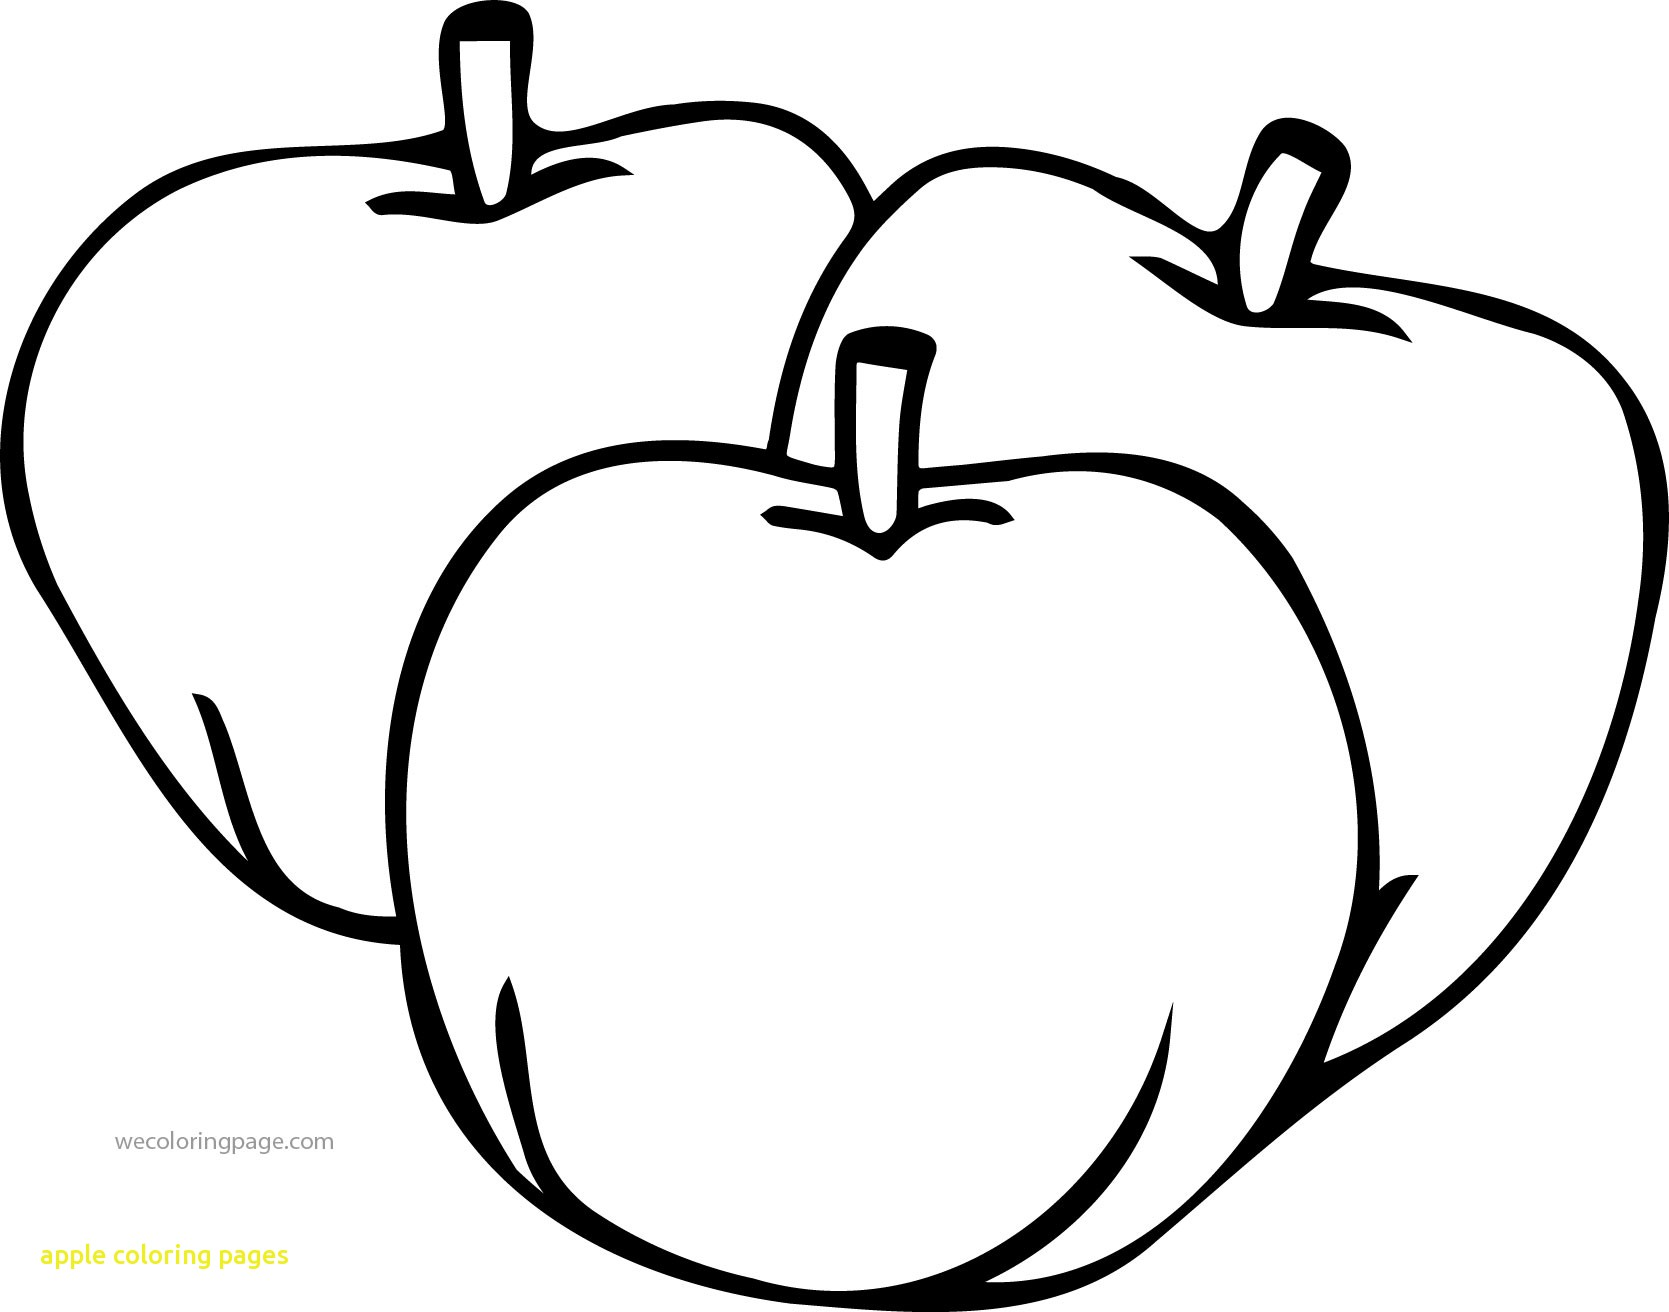 coloring apple page apples coloring pages team colors page apple coloring